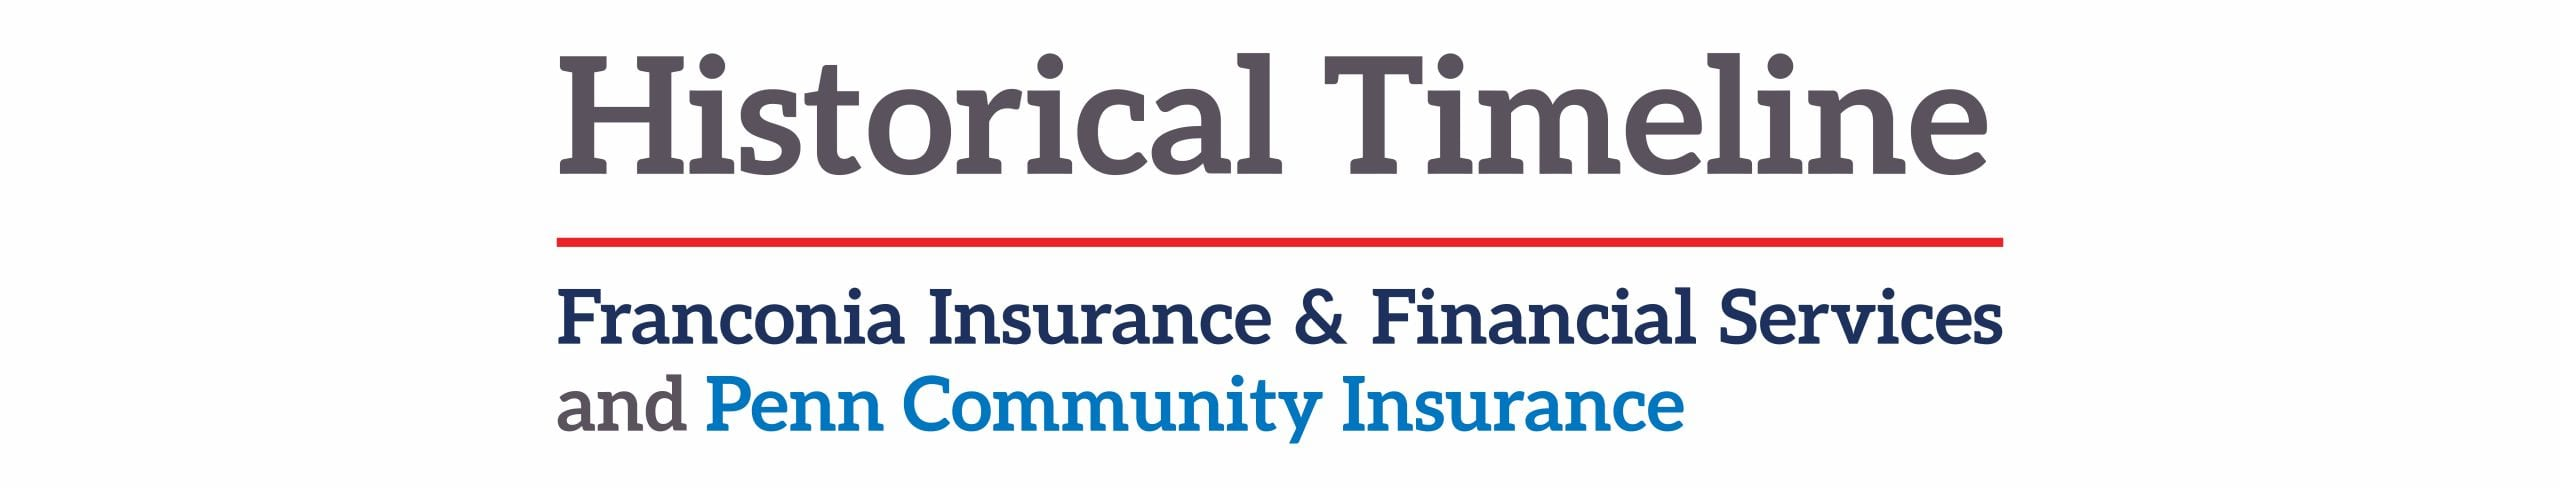 Historical Timeline of Franconia Insurance and Penn Community Insurance